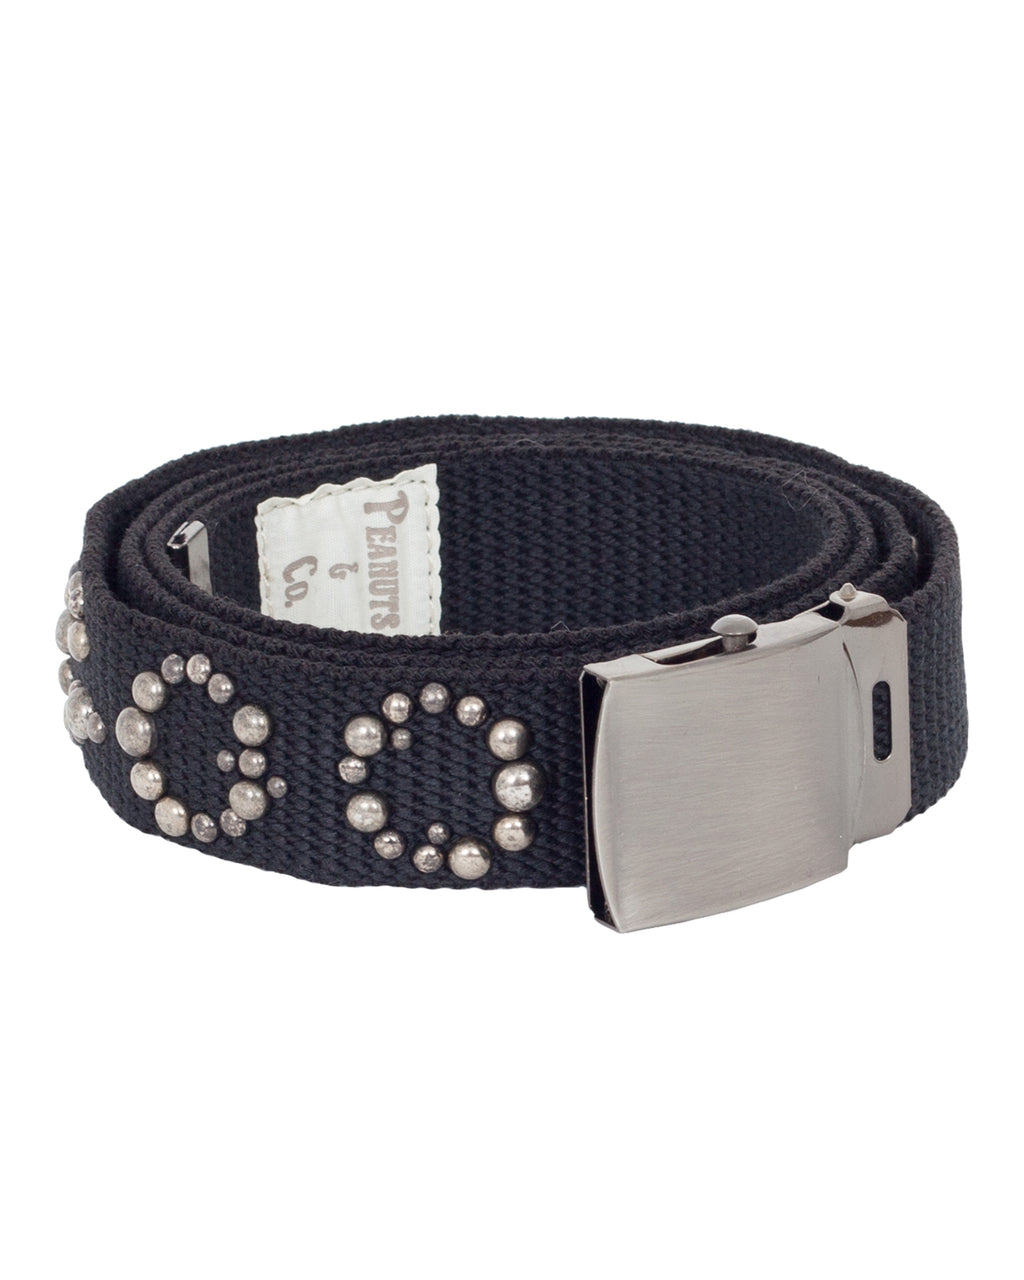 Peanuts & Co Studded Gacha Belt, Black